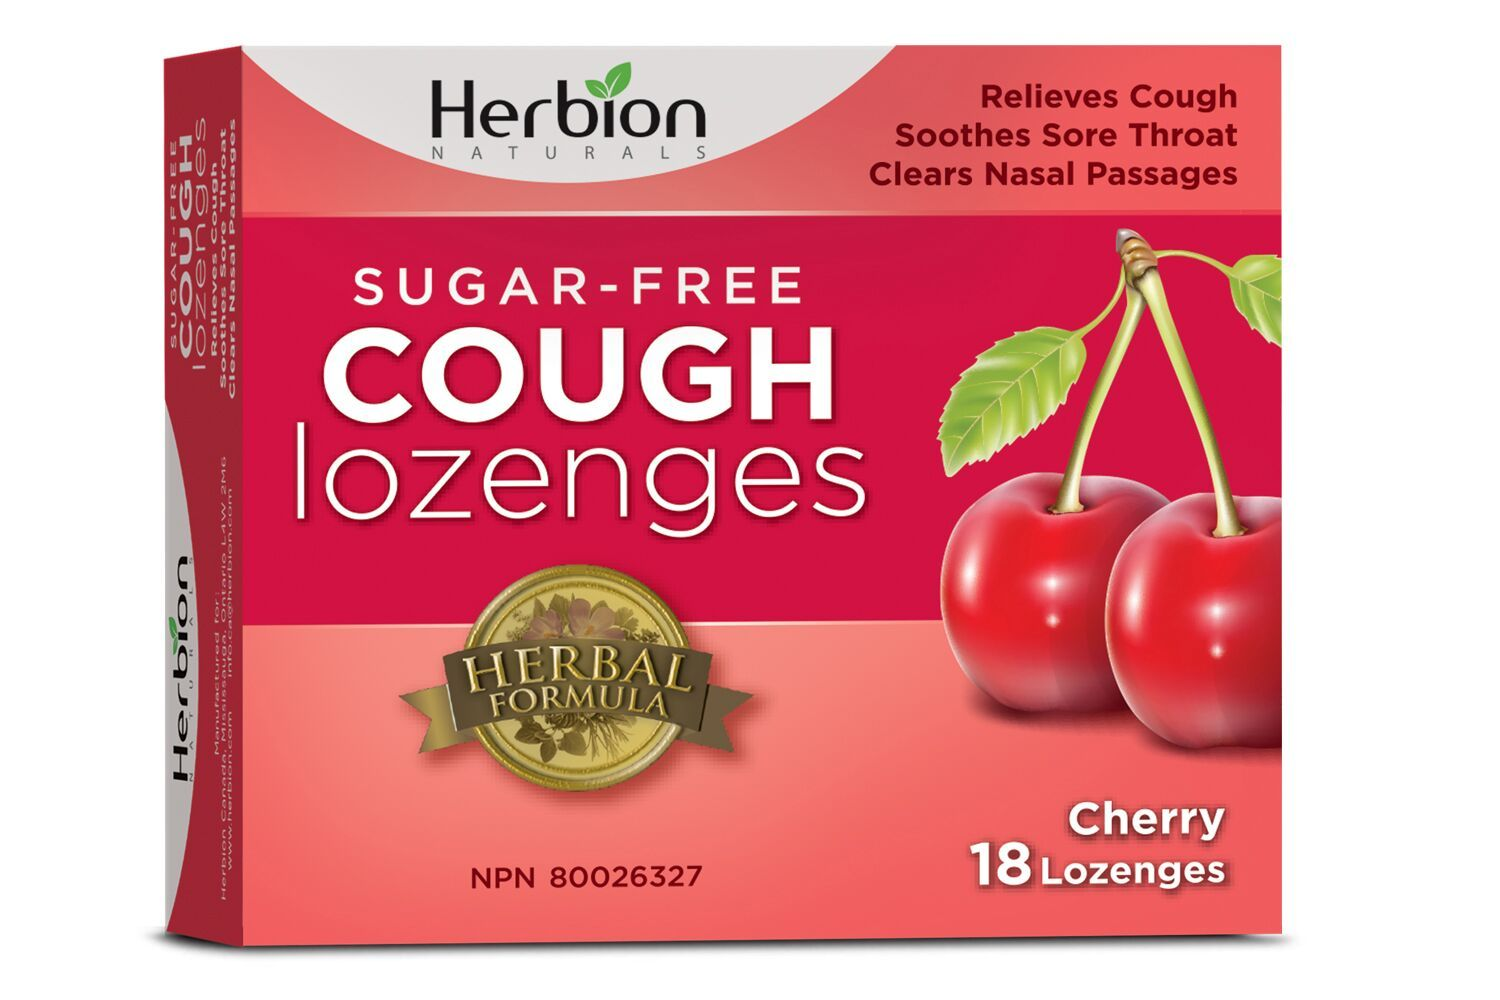 Supplements & Vitamins - Herbion - Sugar Free Cherry Cough Lozenges, 18 Lozenges